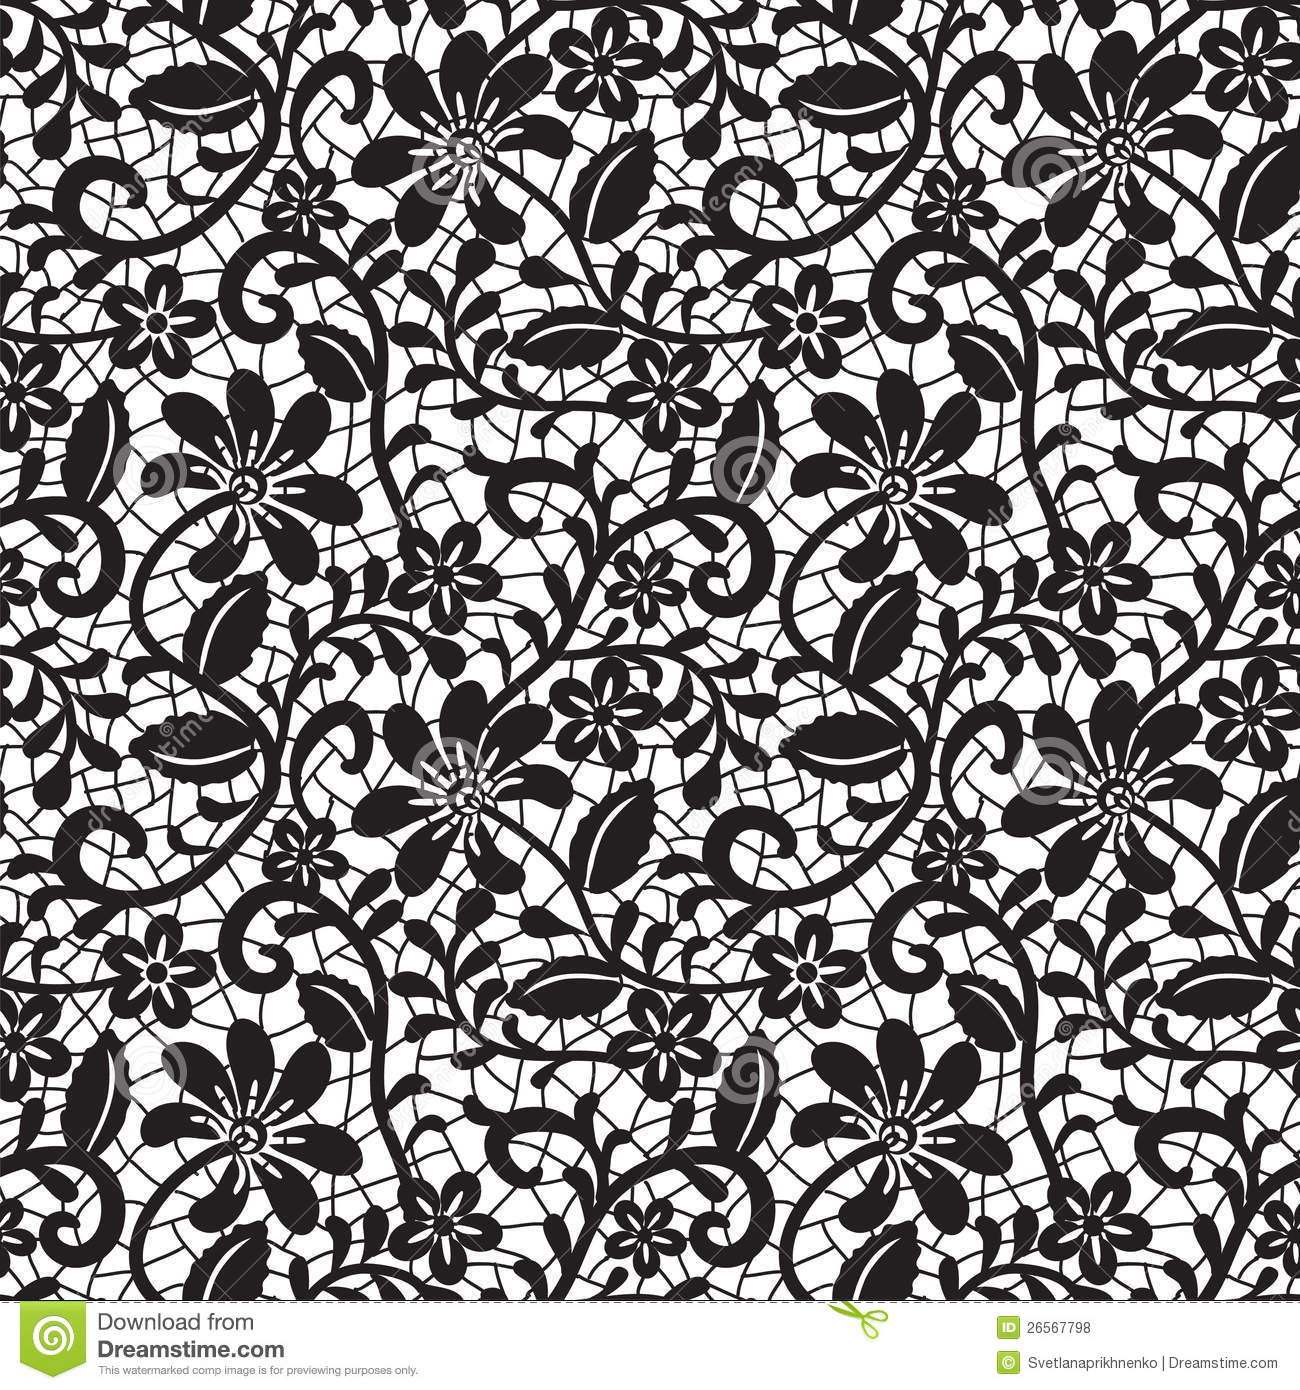 Iphone 7 Water Wallpaper Black Seamless Lace Pattern Royalty Free Stock Photos